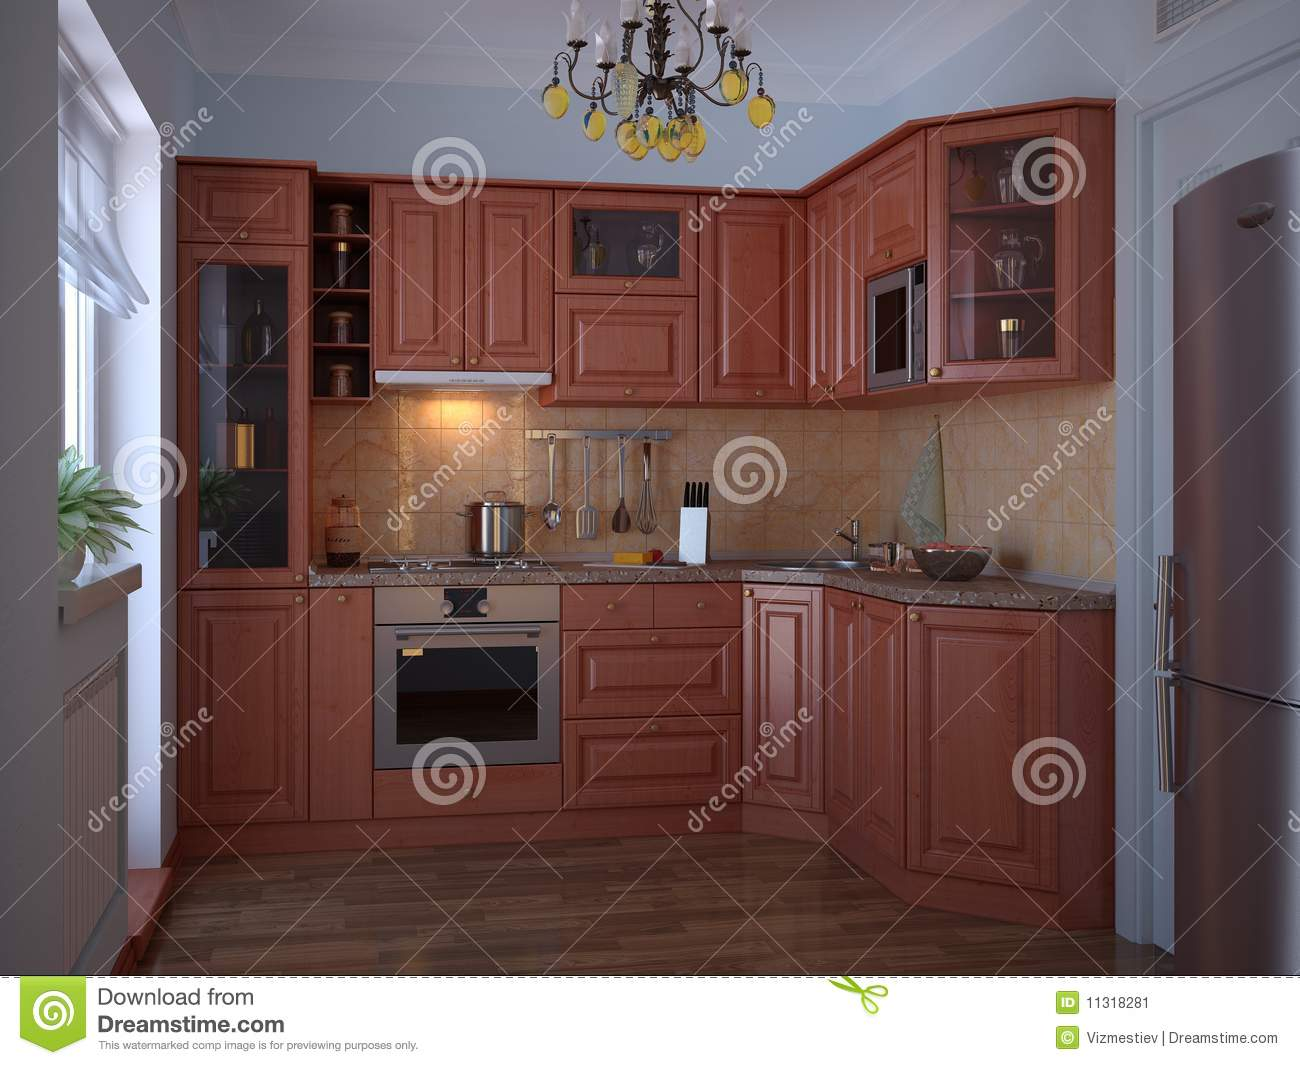 id e de conception de cuisine image stock image 11318281. Black Bedroom Furniture Sets. Home Design Ideas